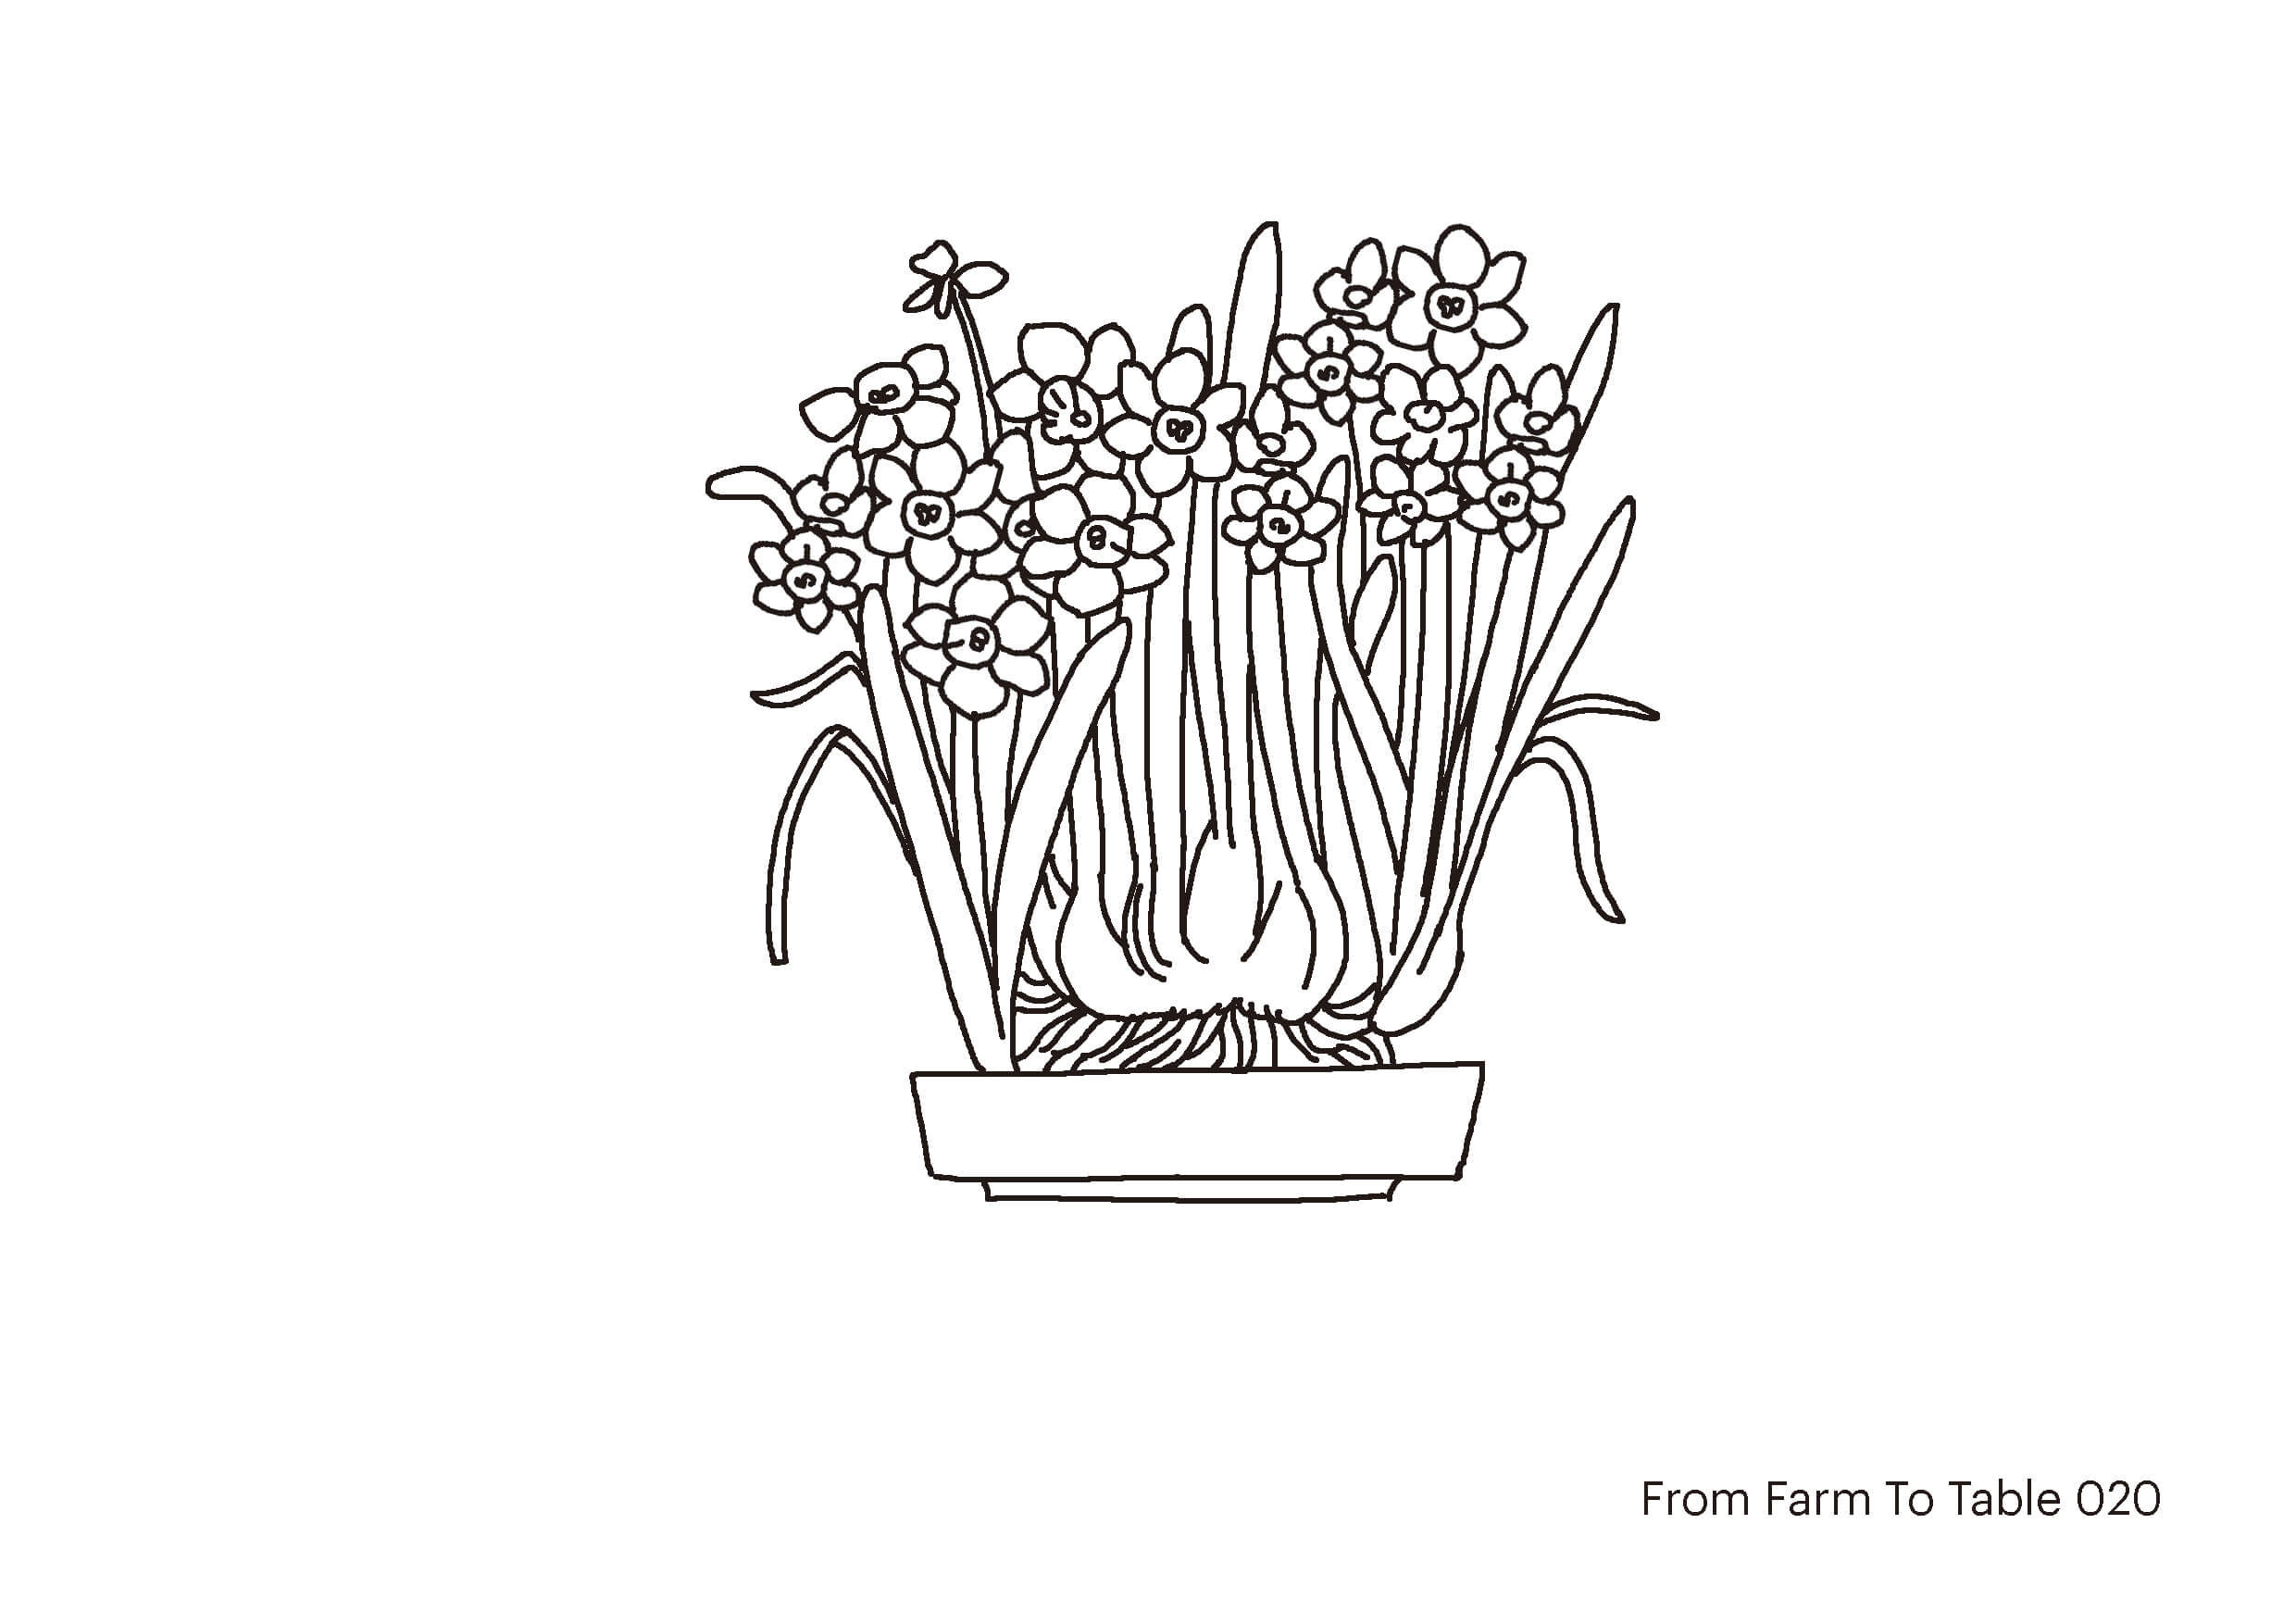 farm to table - Don_s drawing-20web.jpg